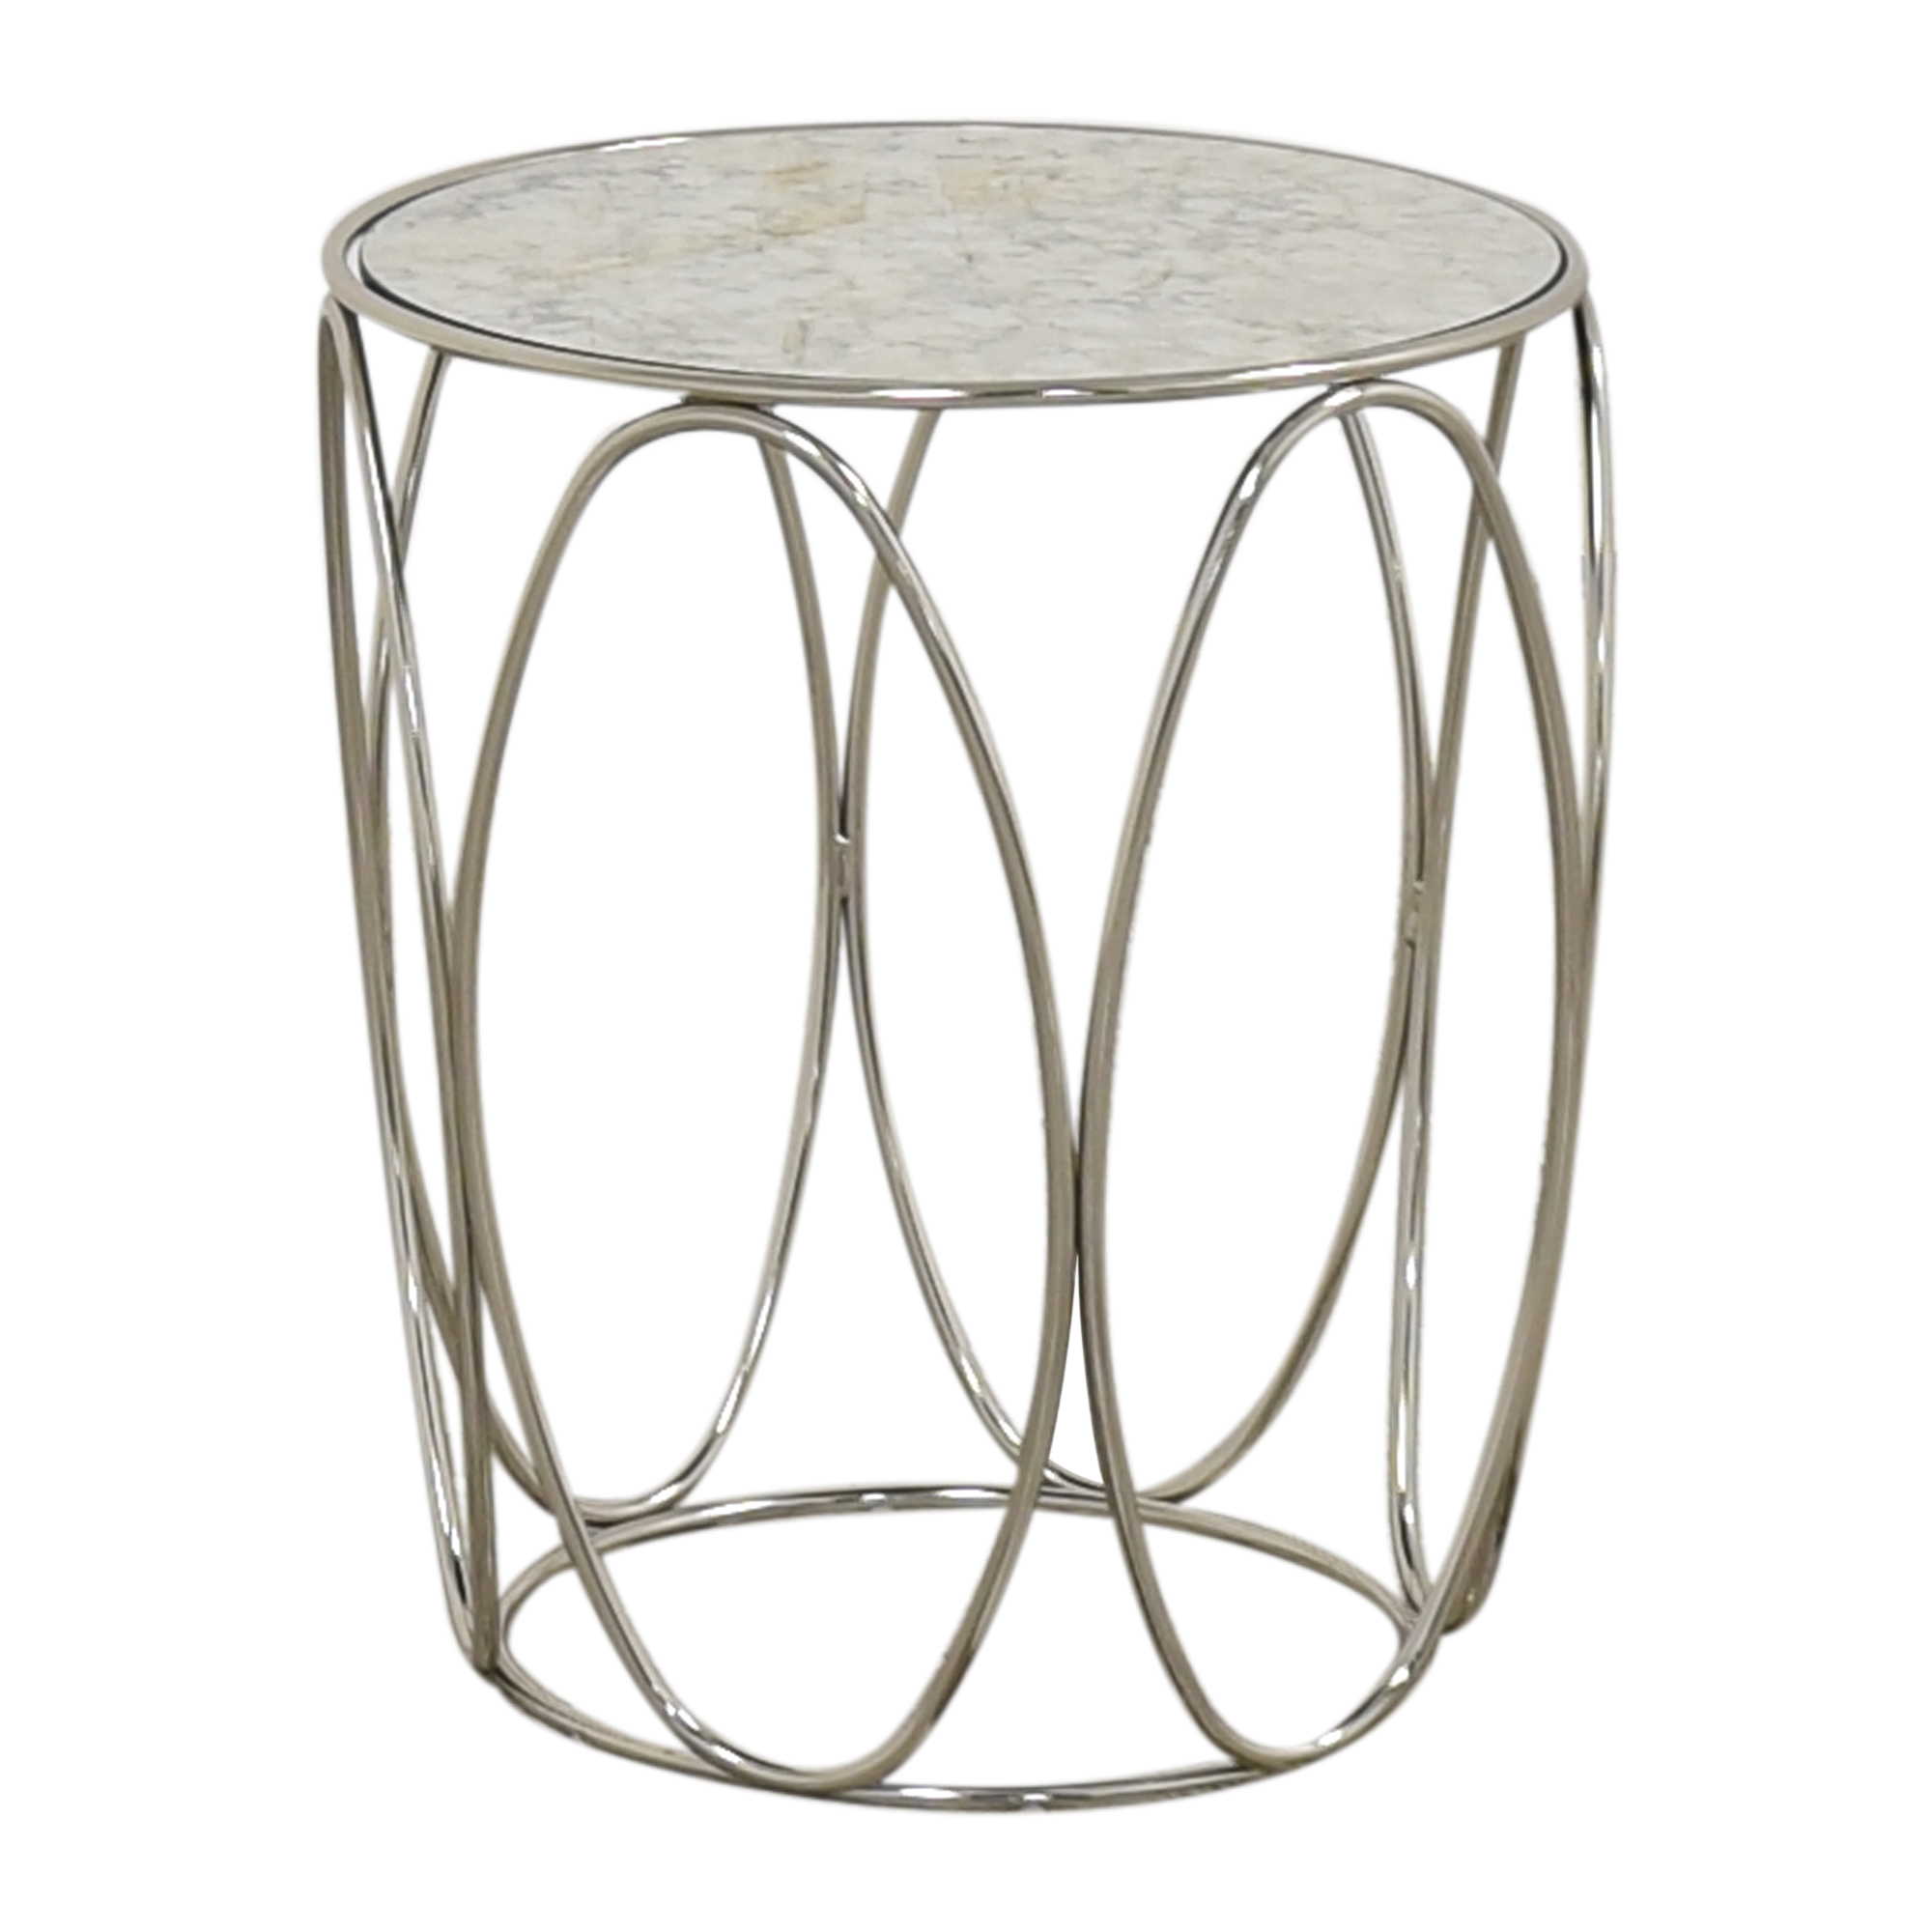 buy Crate & Barrel Modern Round End Table Crate & Barrel Tables